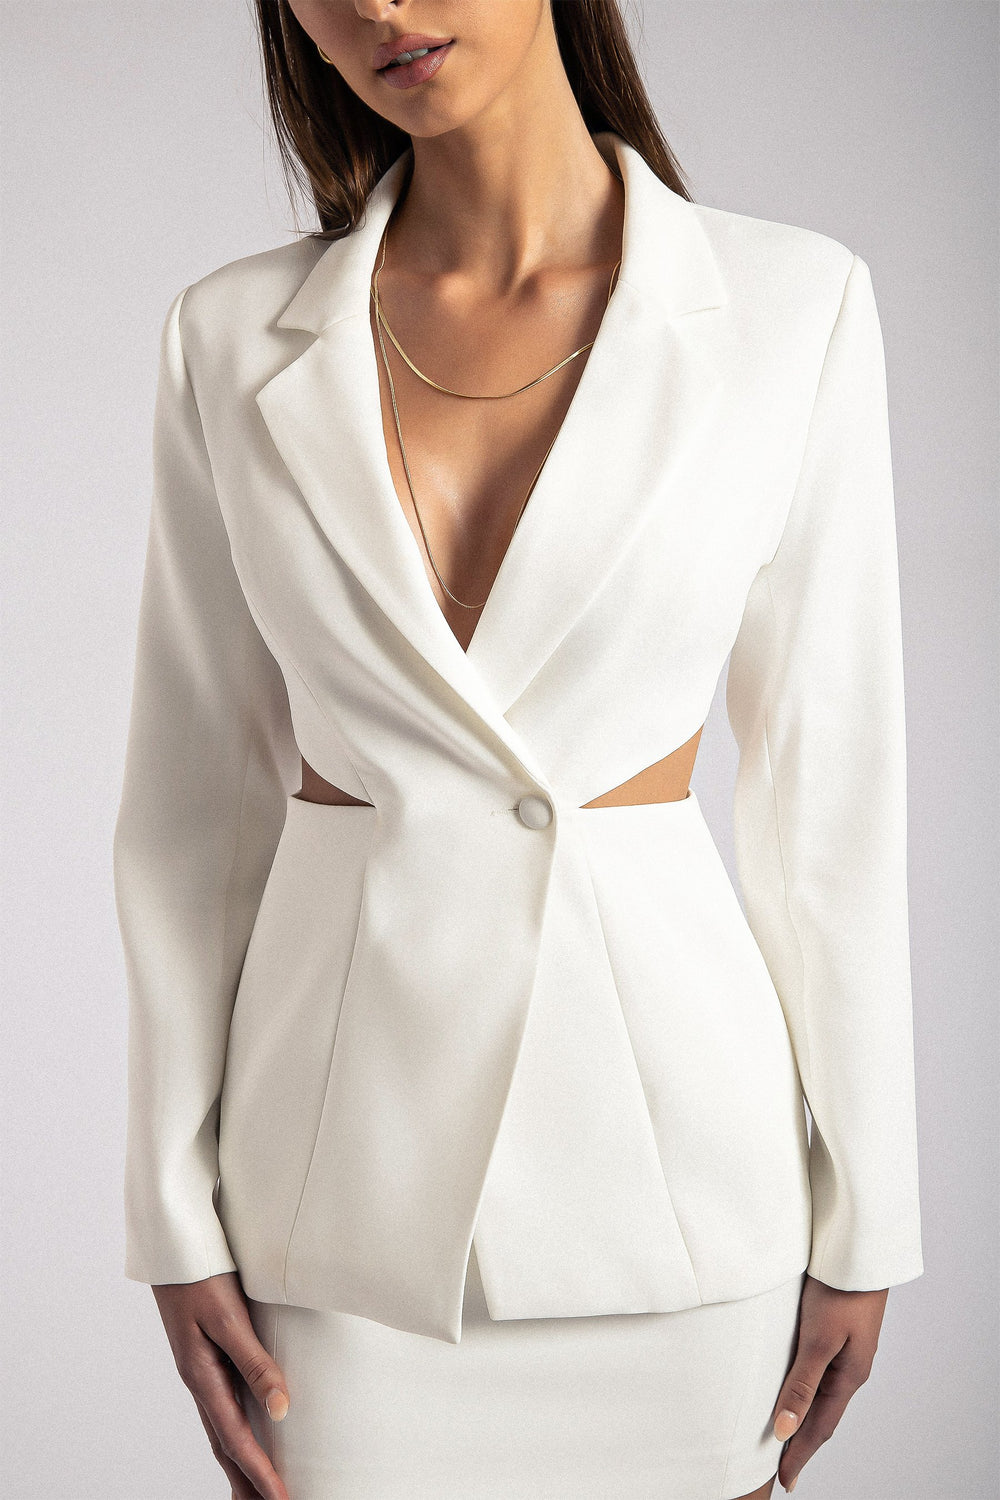 Nova Cut Out Blazer - White